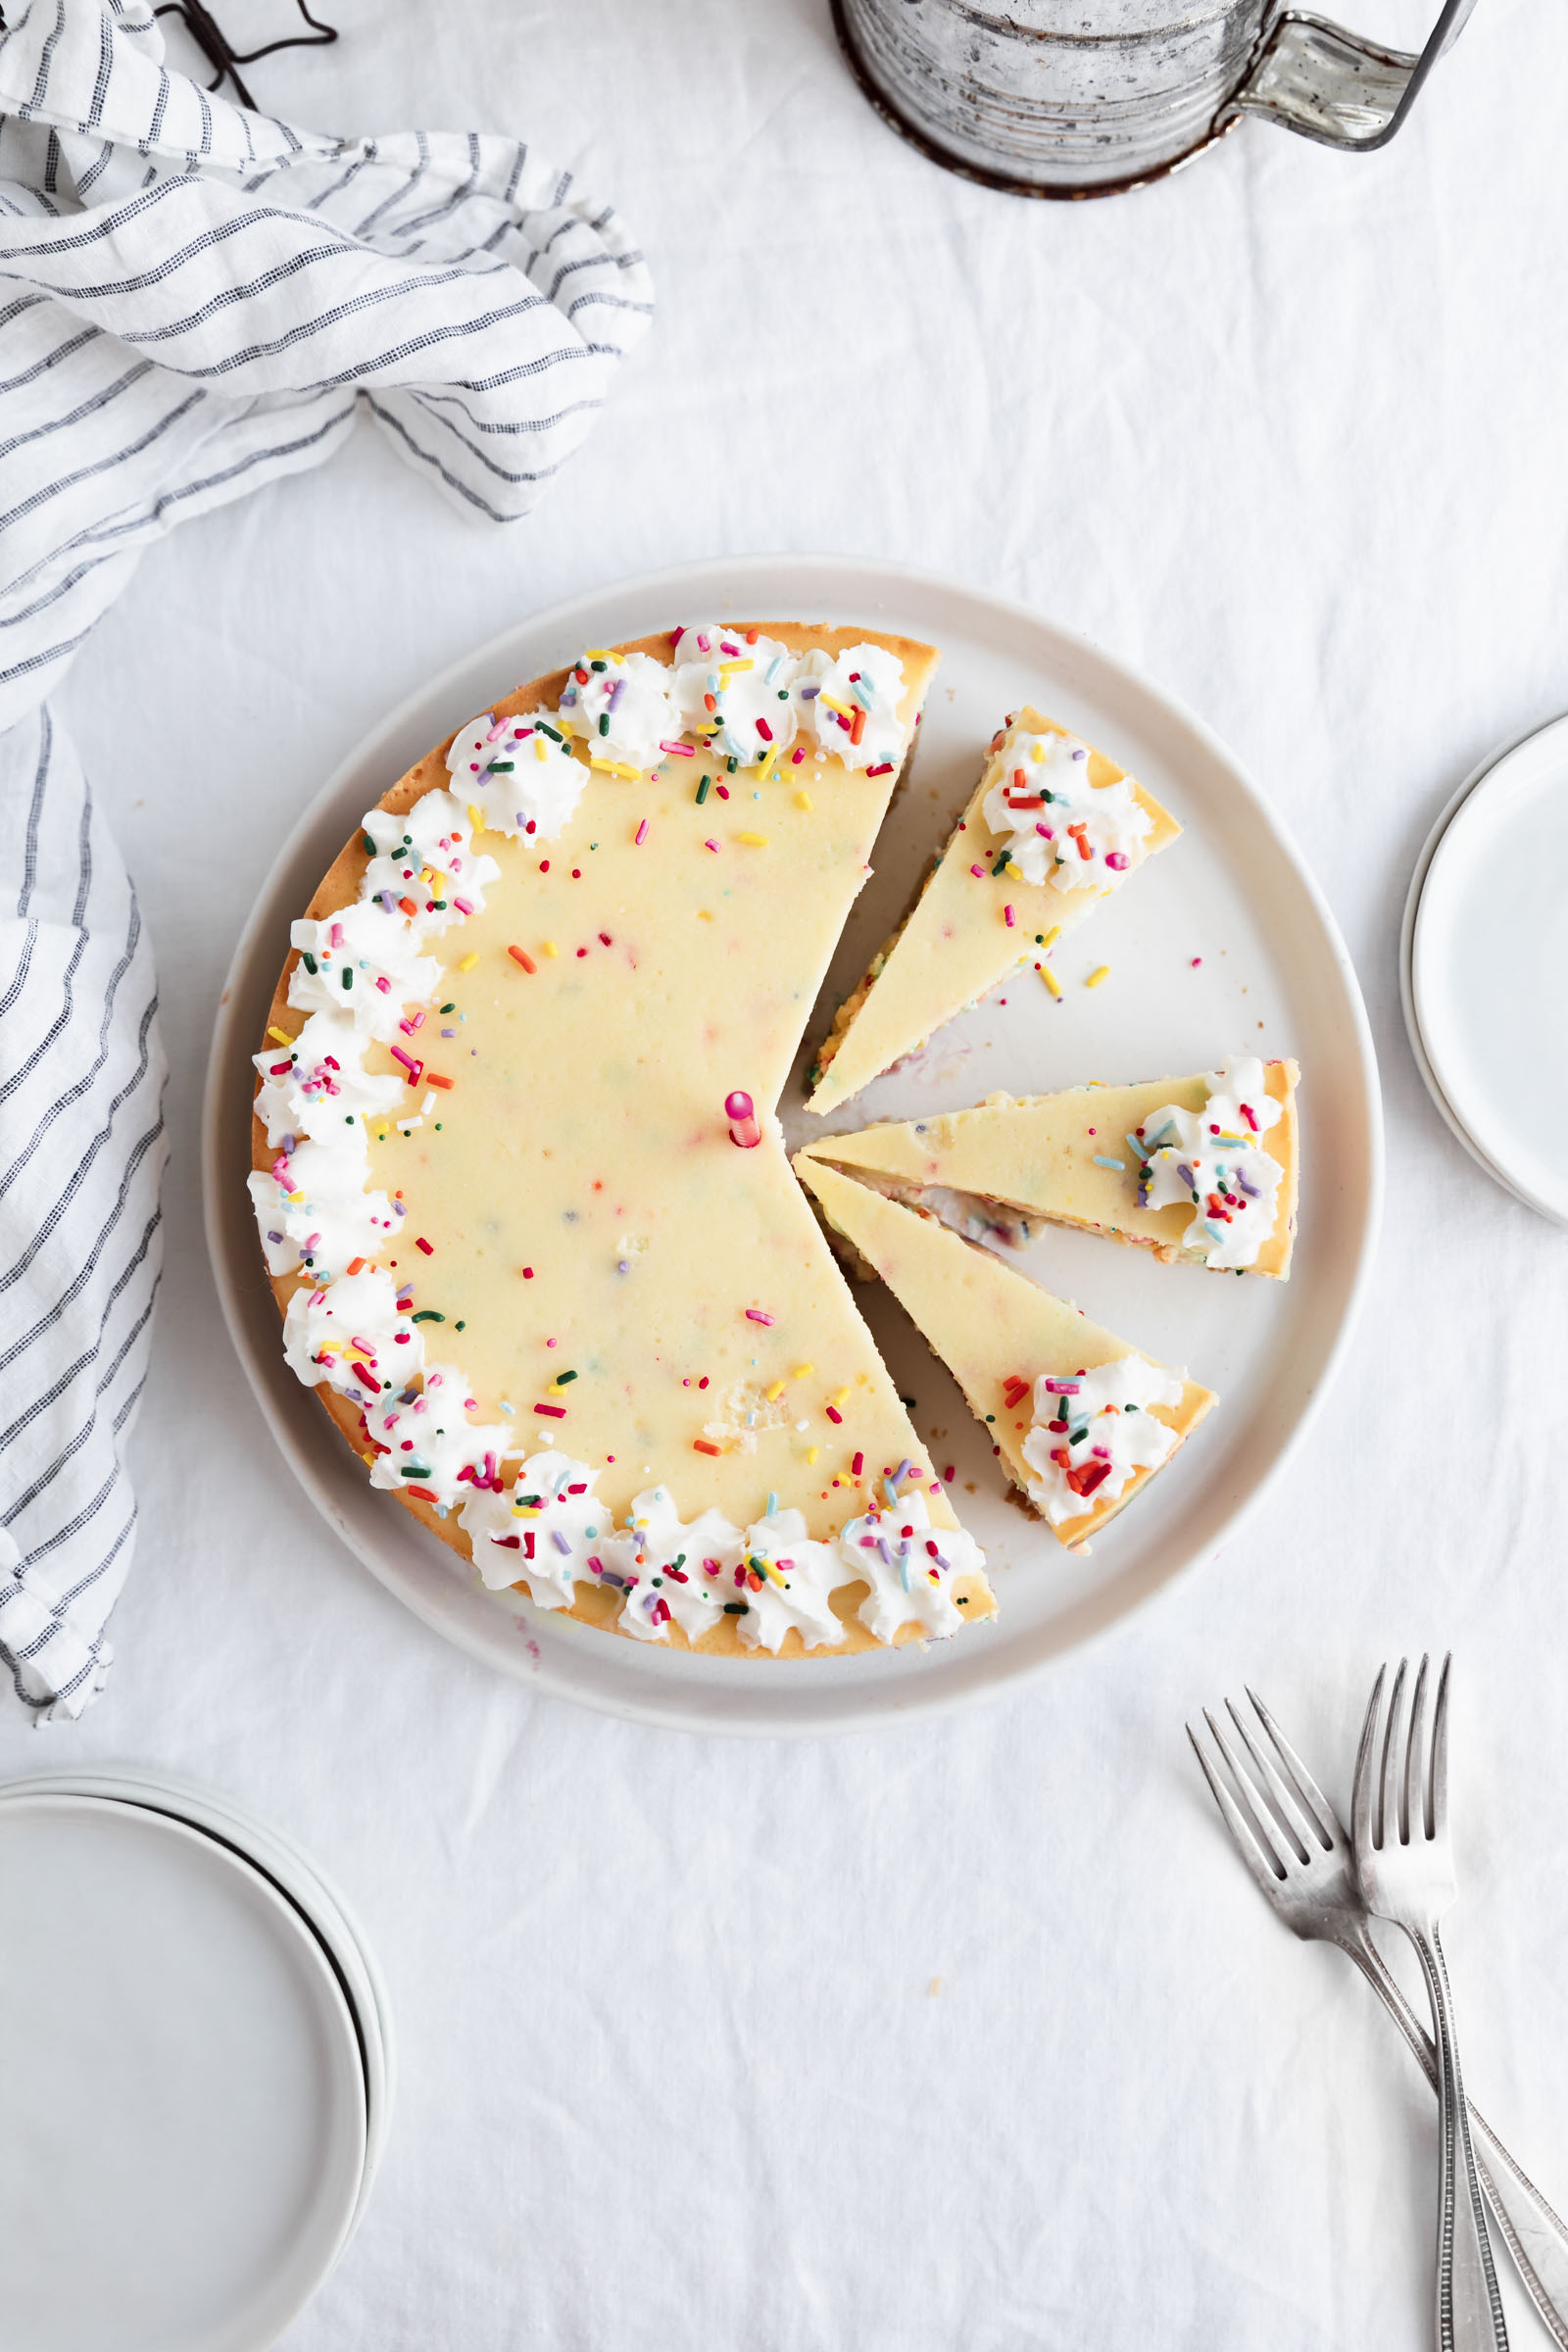 full birthday cheesecake with sprinkles and whipped cream